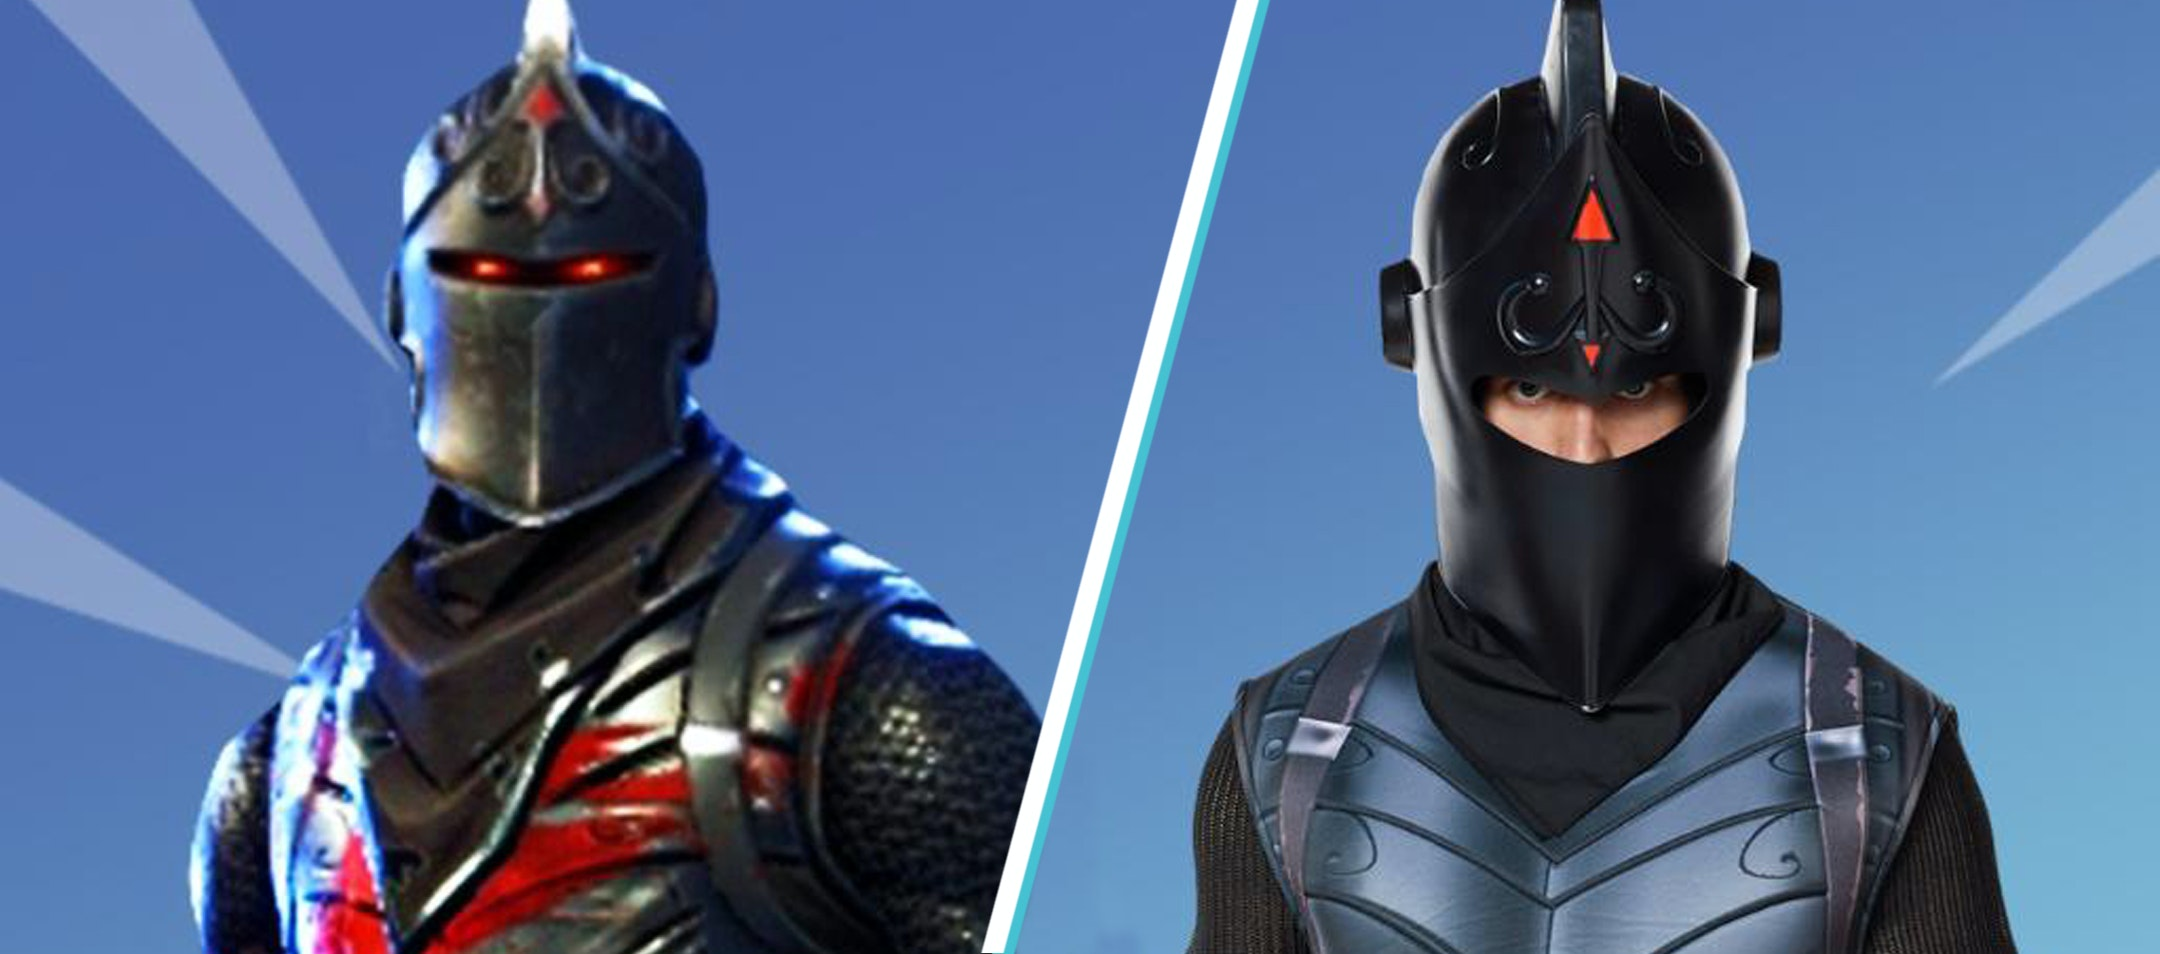 Fortnite Halloween Costumes Brace Yourself As Google Searches Soar